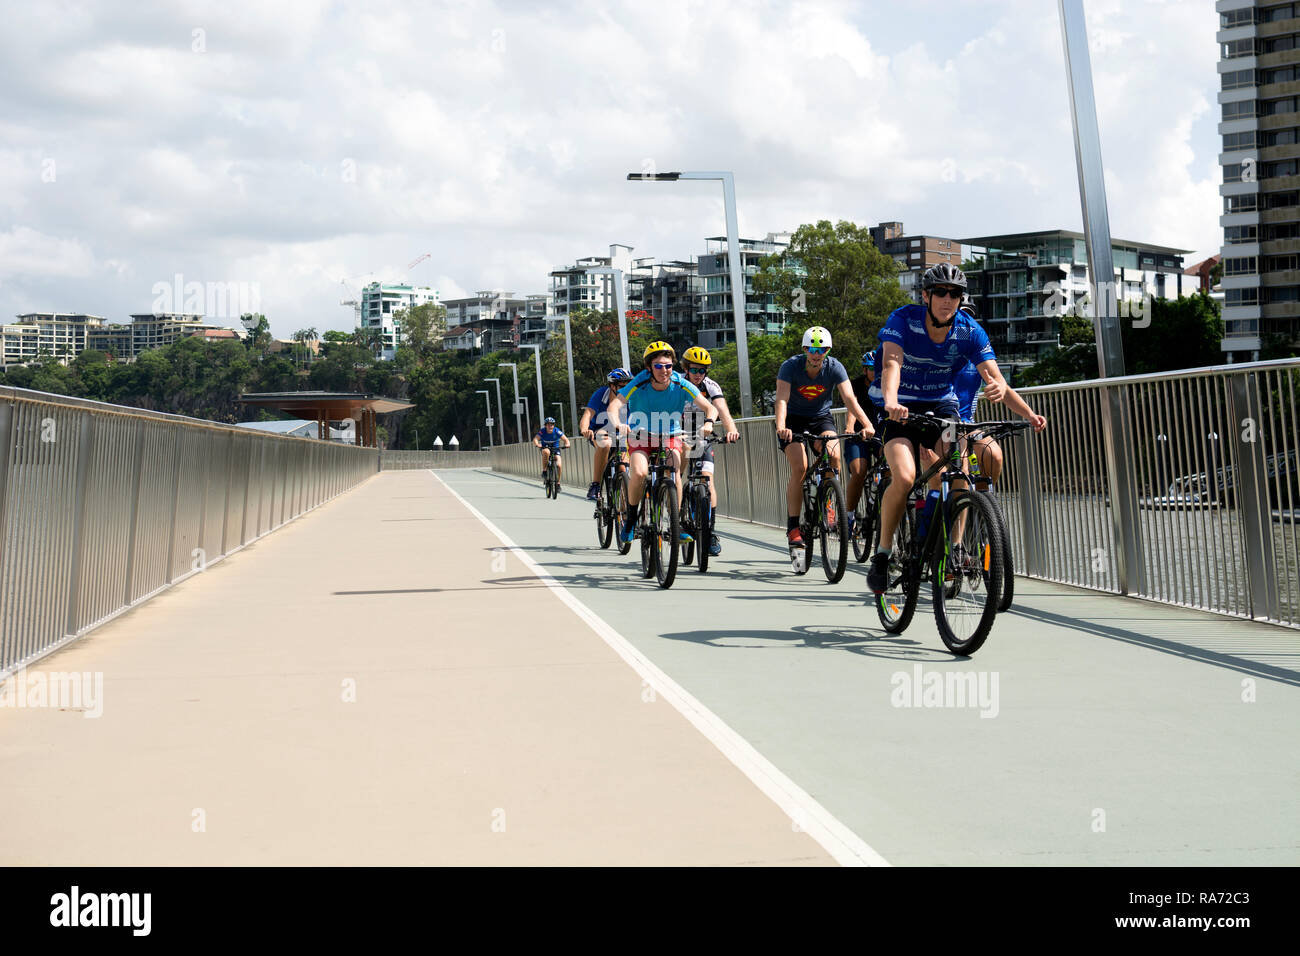 Cyclists on the Riverwalk, New Farm, Brisbane, Queensland, Australia - Stock Image